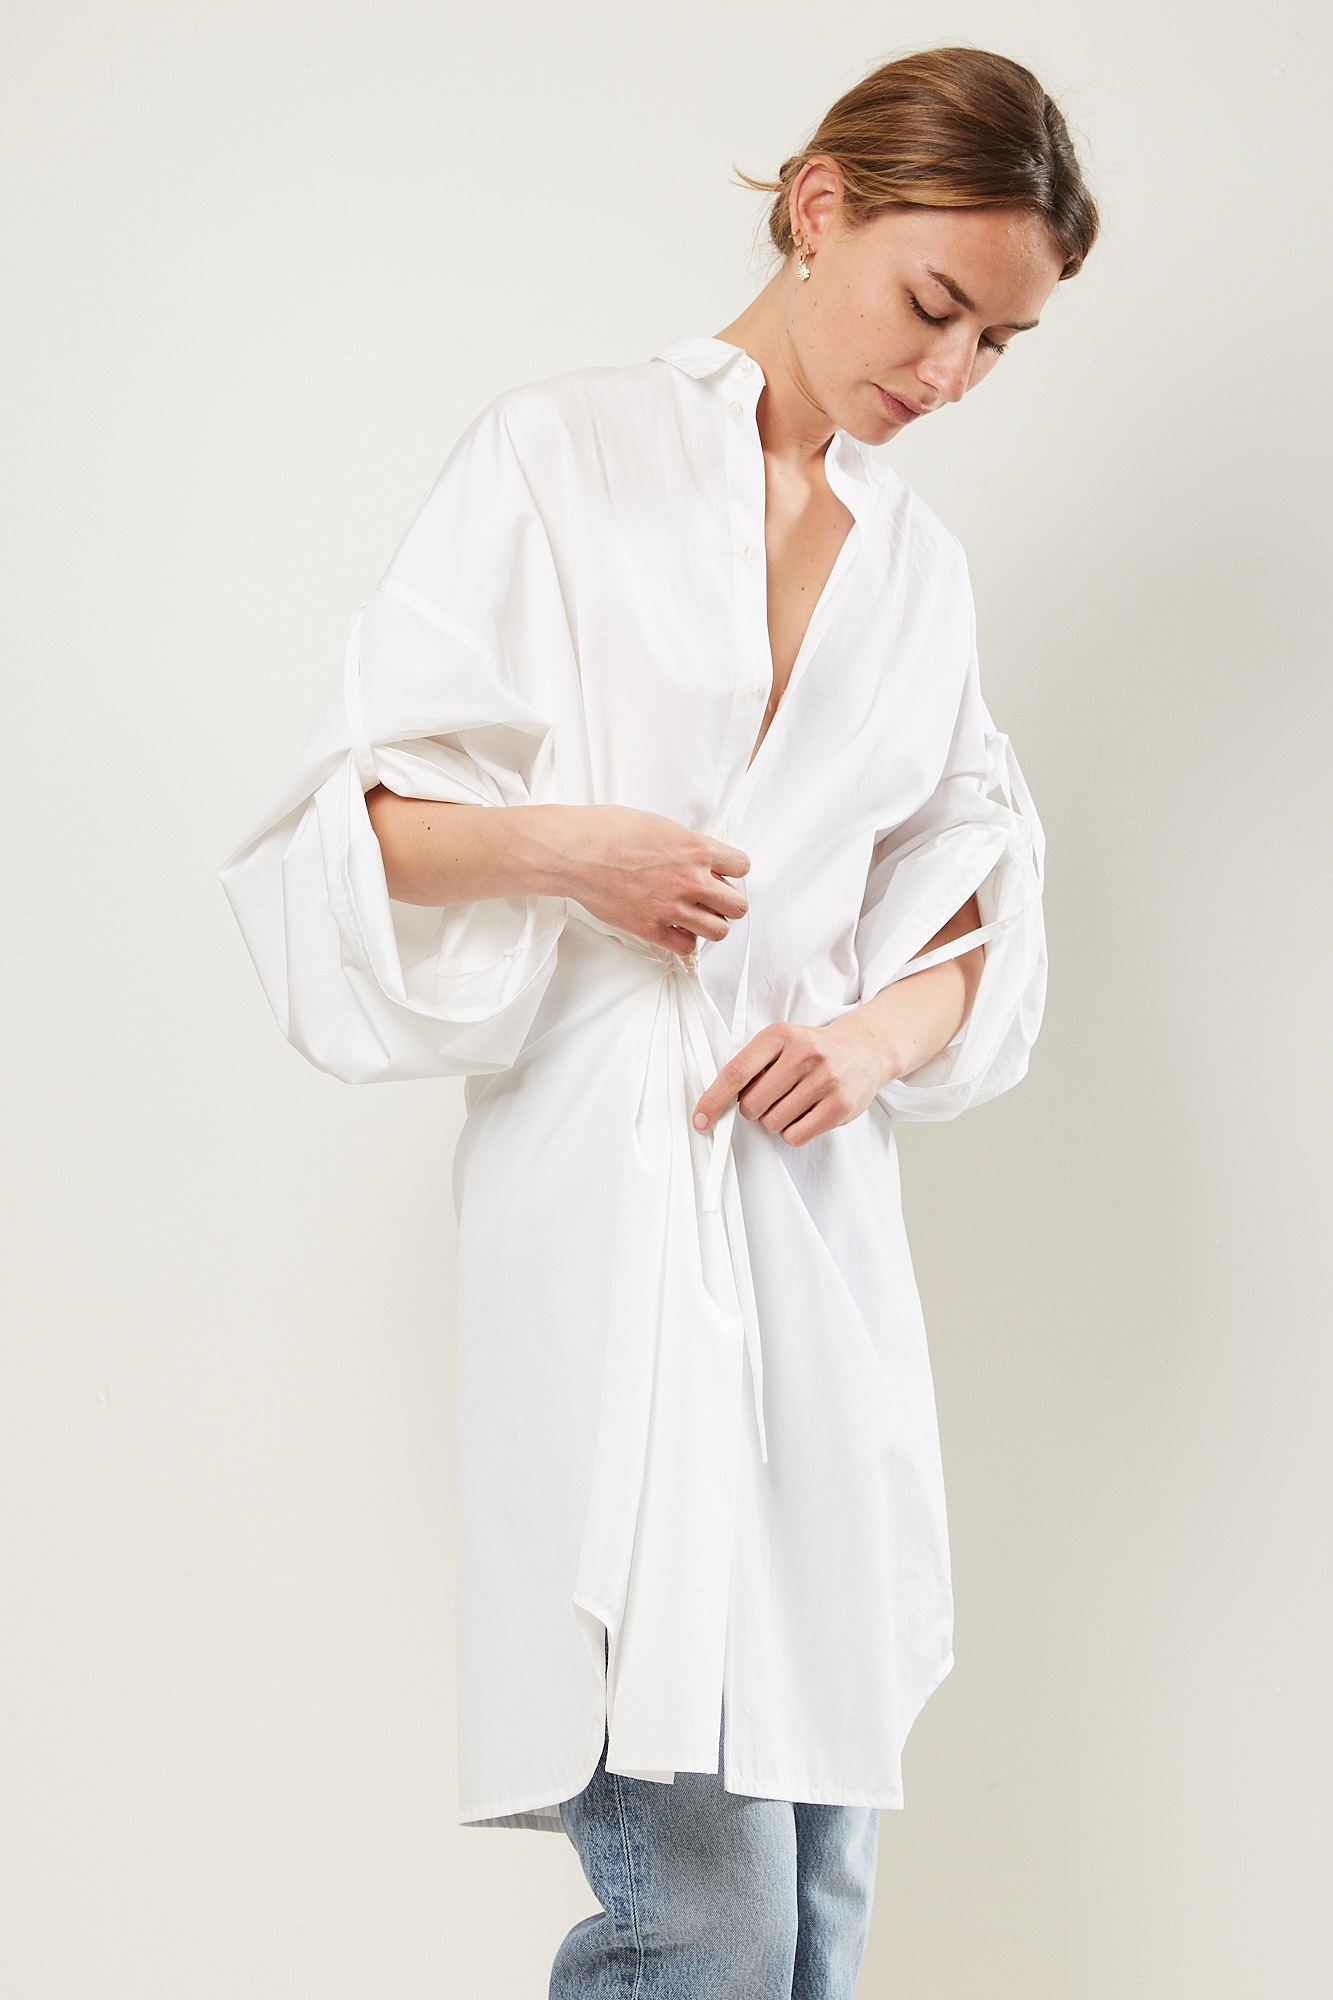 Monique van Heist no10 white cotton shirt dress